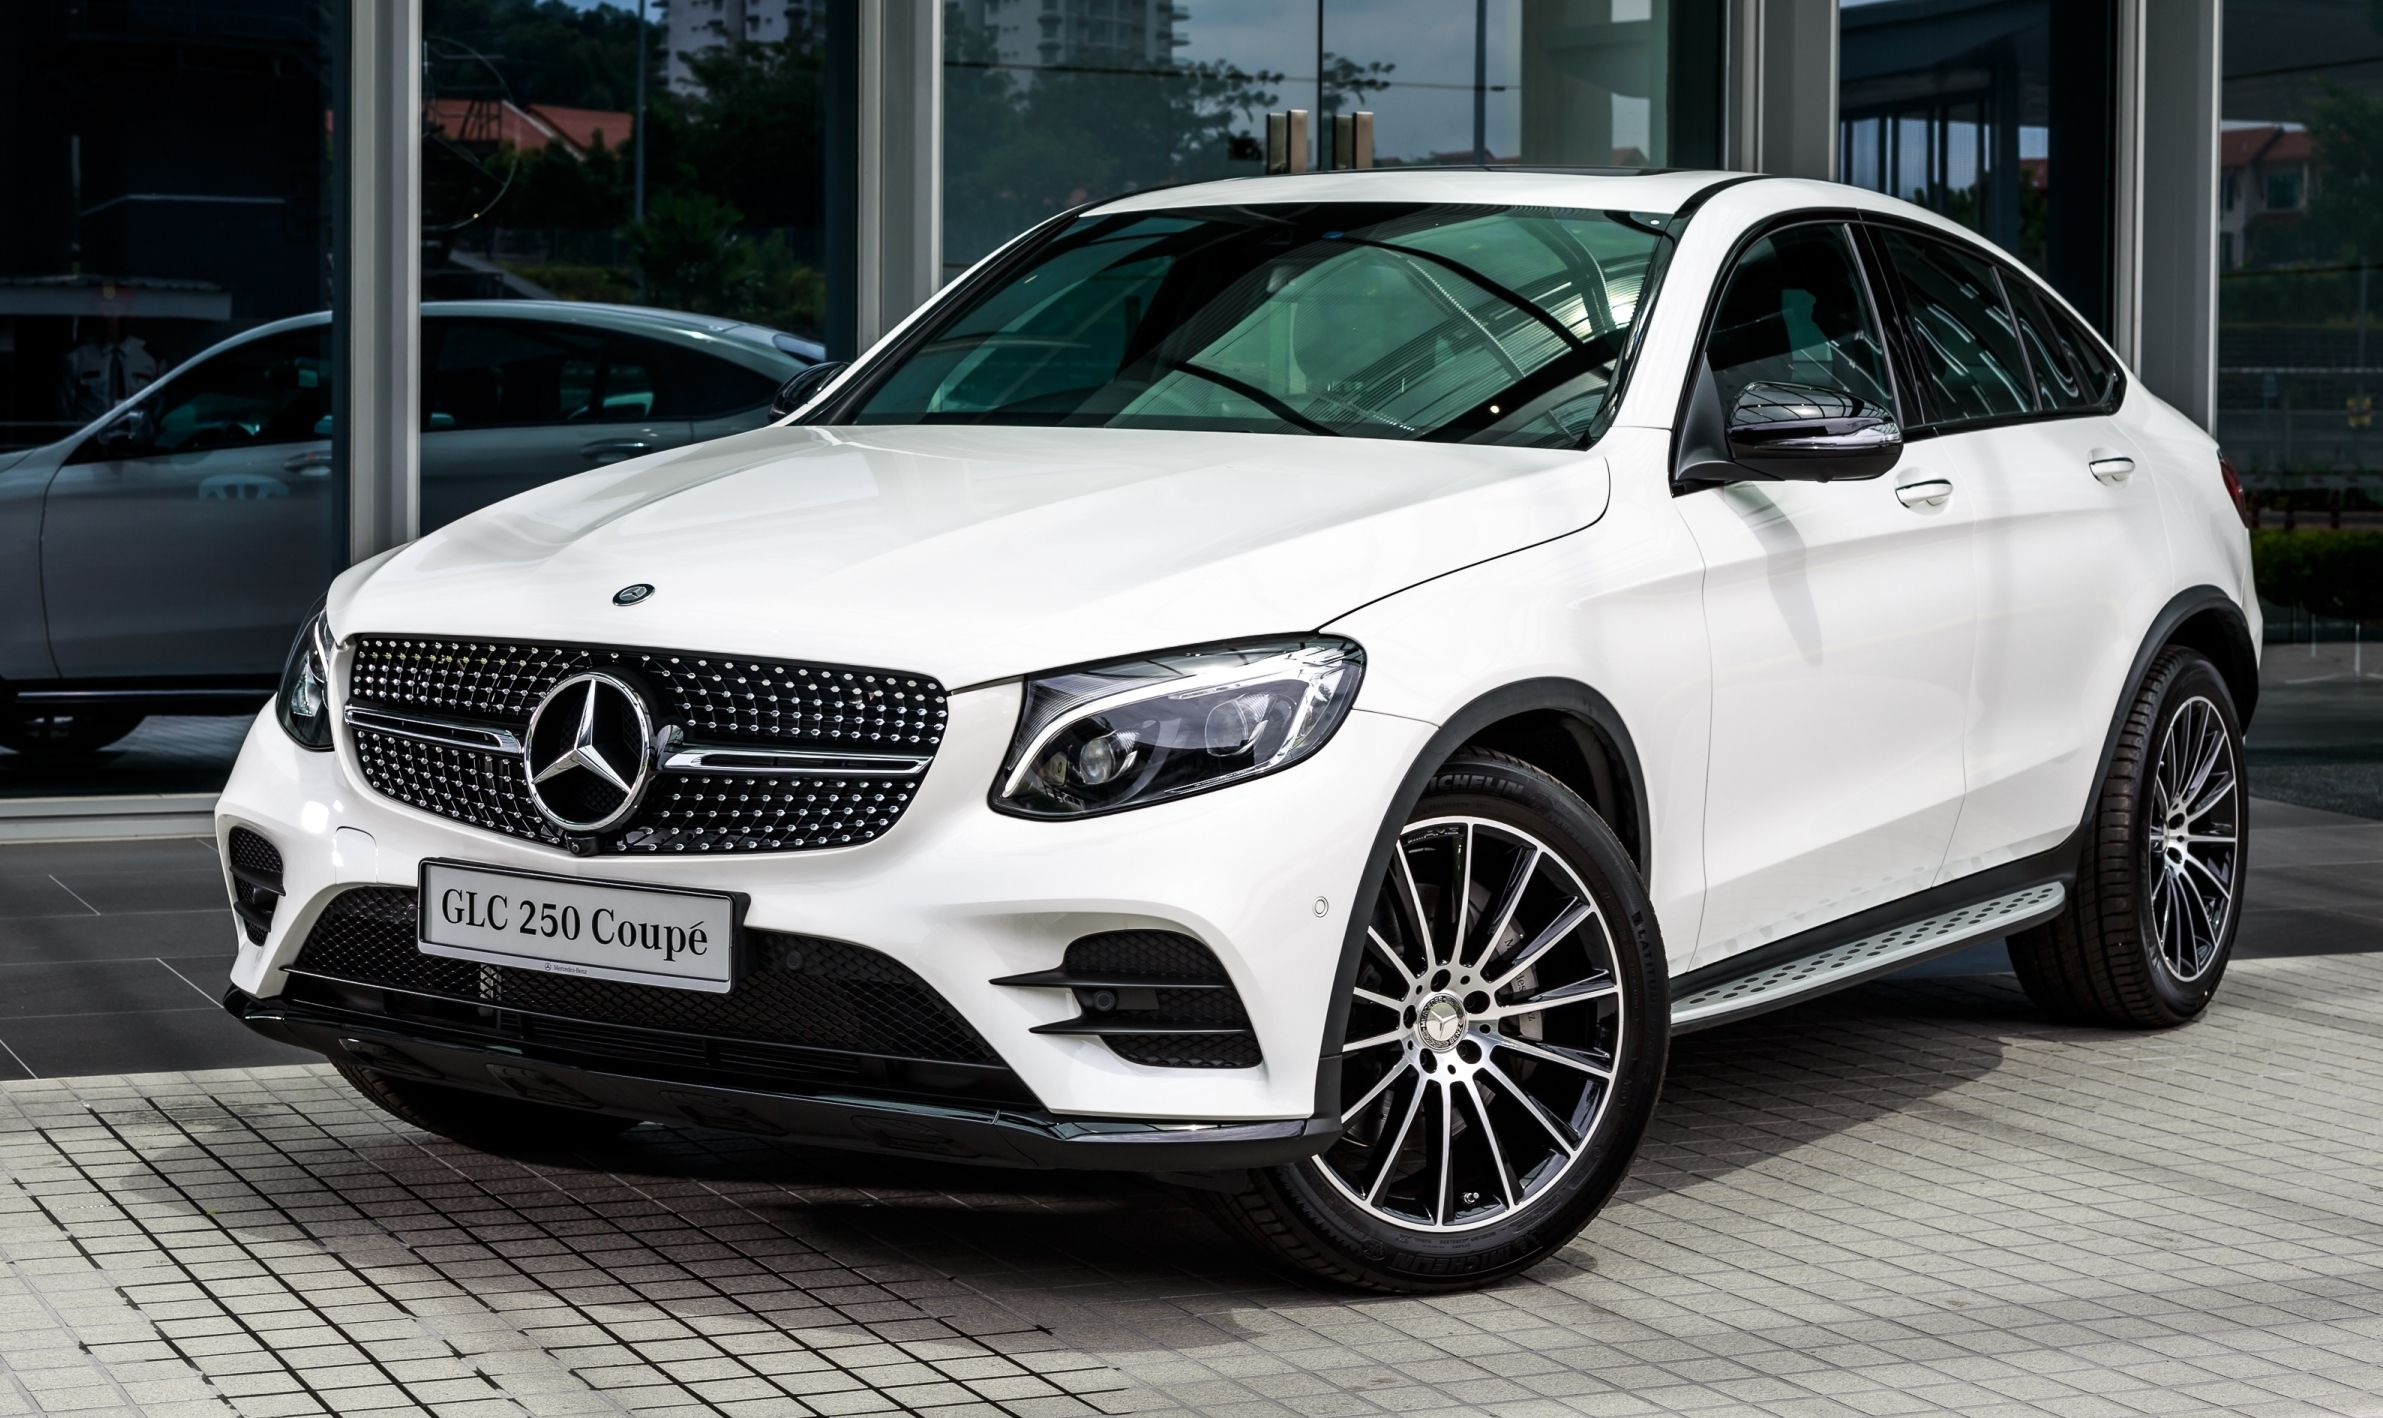 Mercedes Benz Glc Coupe Makes Its Malaysian Debut Single Glc 250